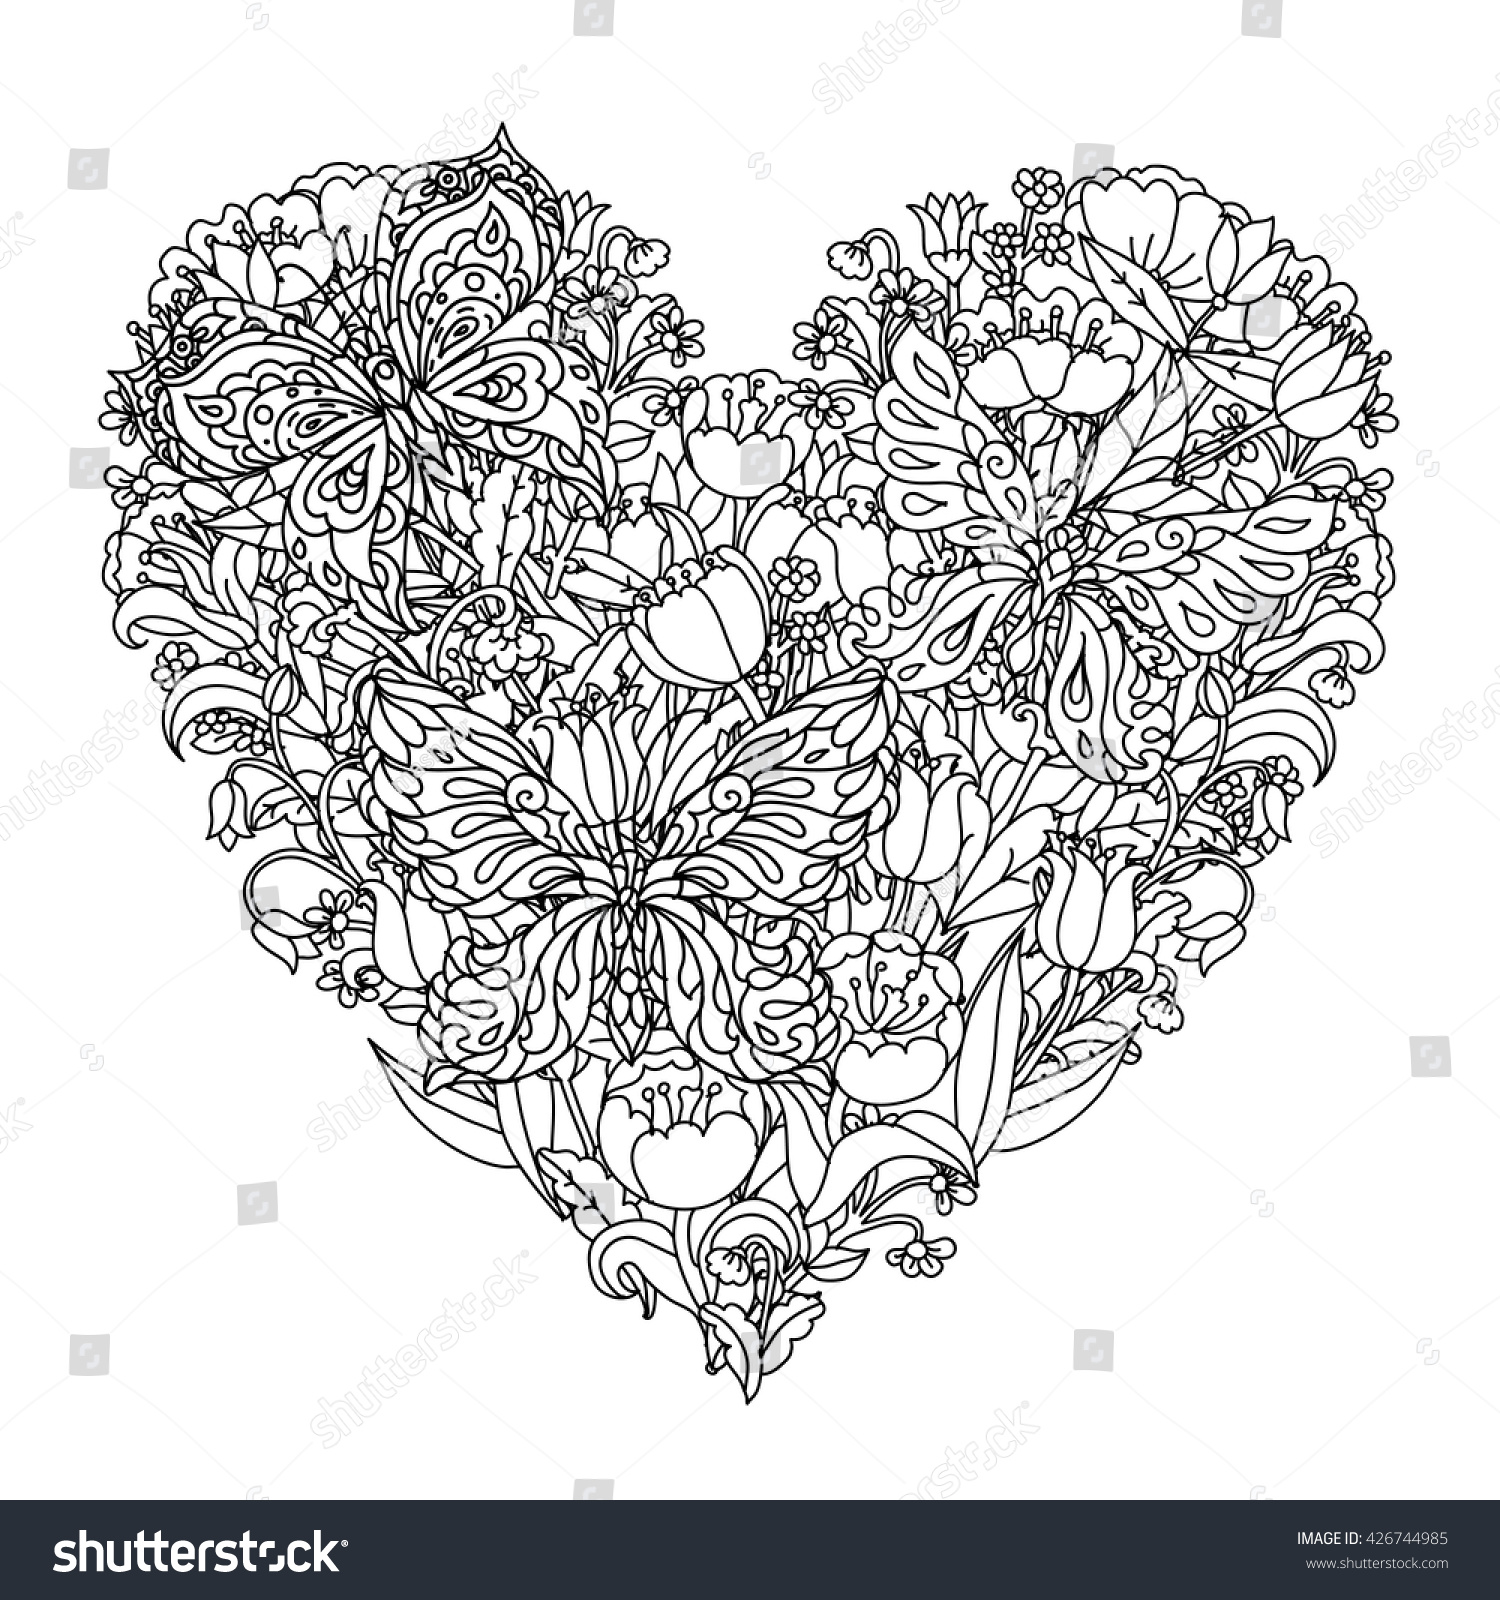 Heart Shape Flowers And Butterfly For Adult Coloring Book In Famous Zen Art Therapy Antistress Style